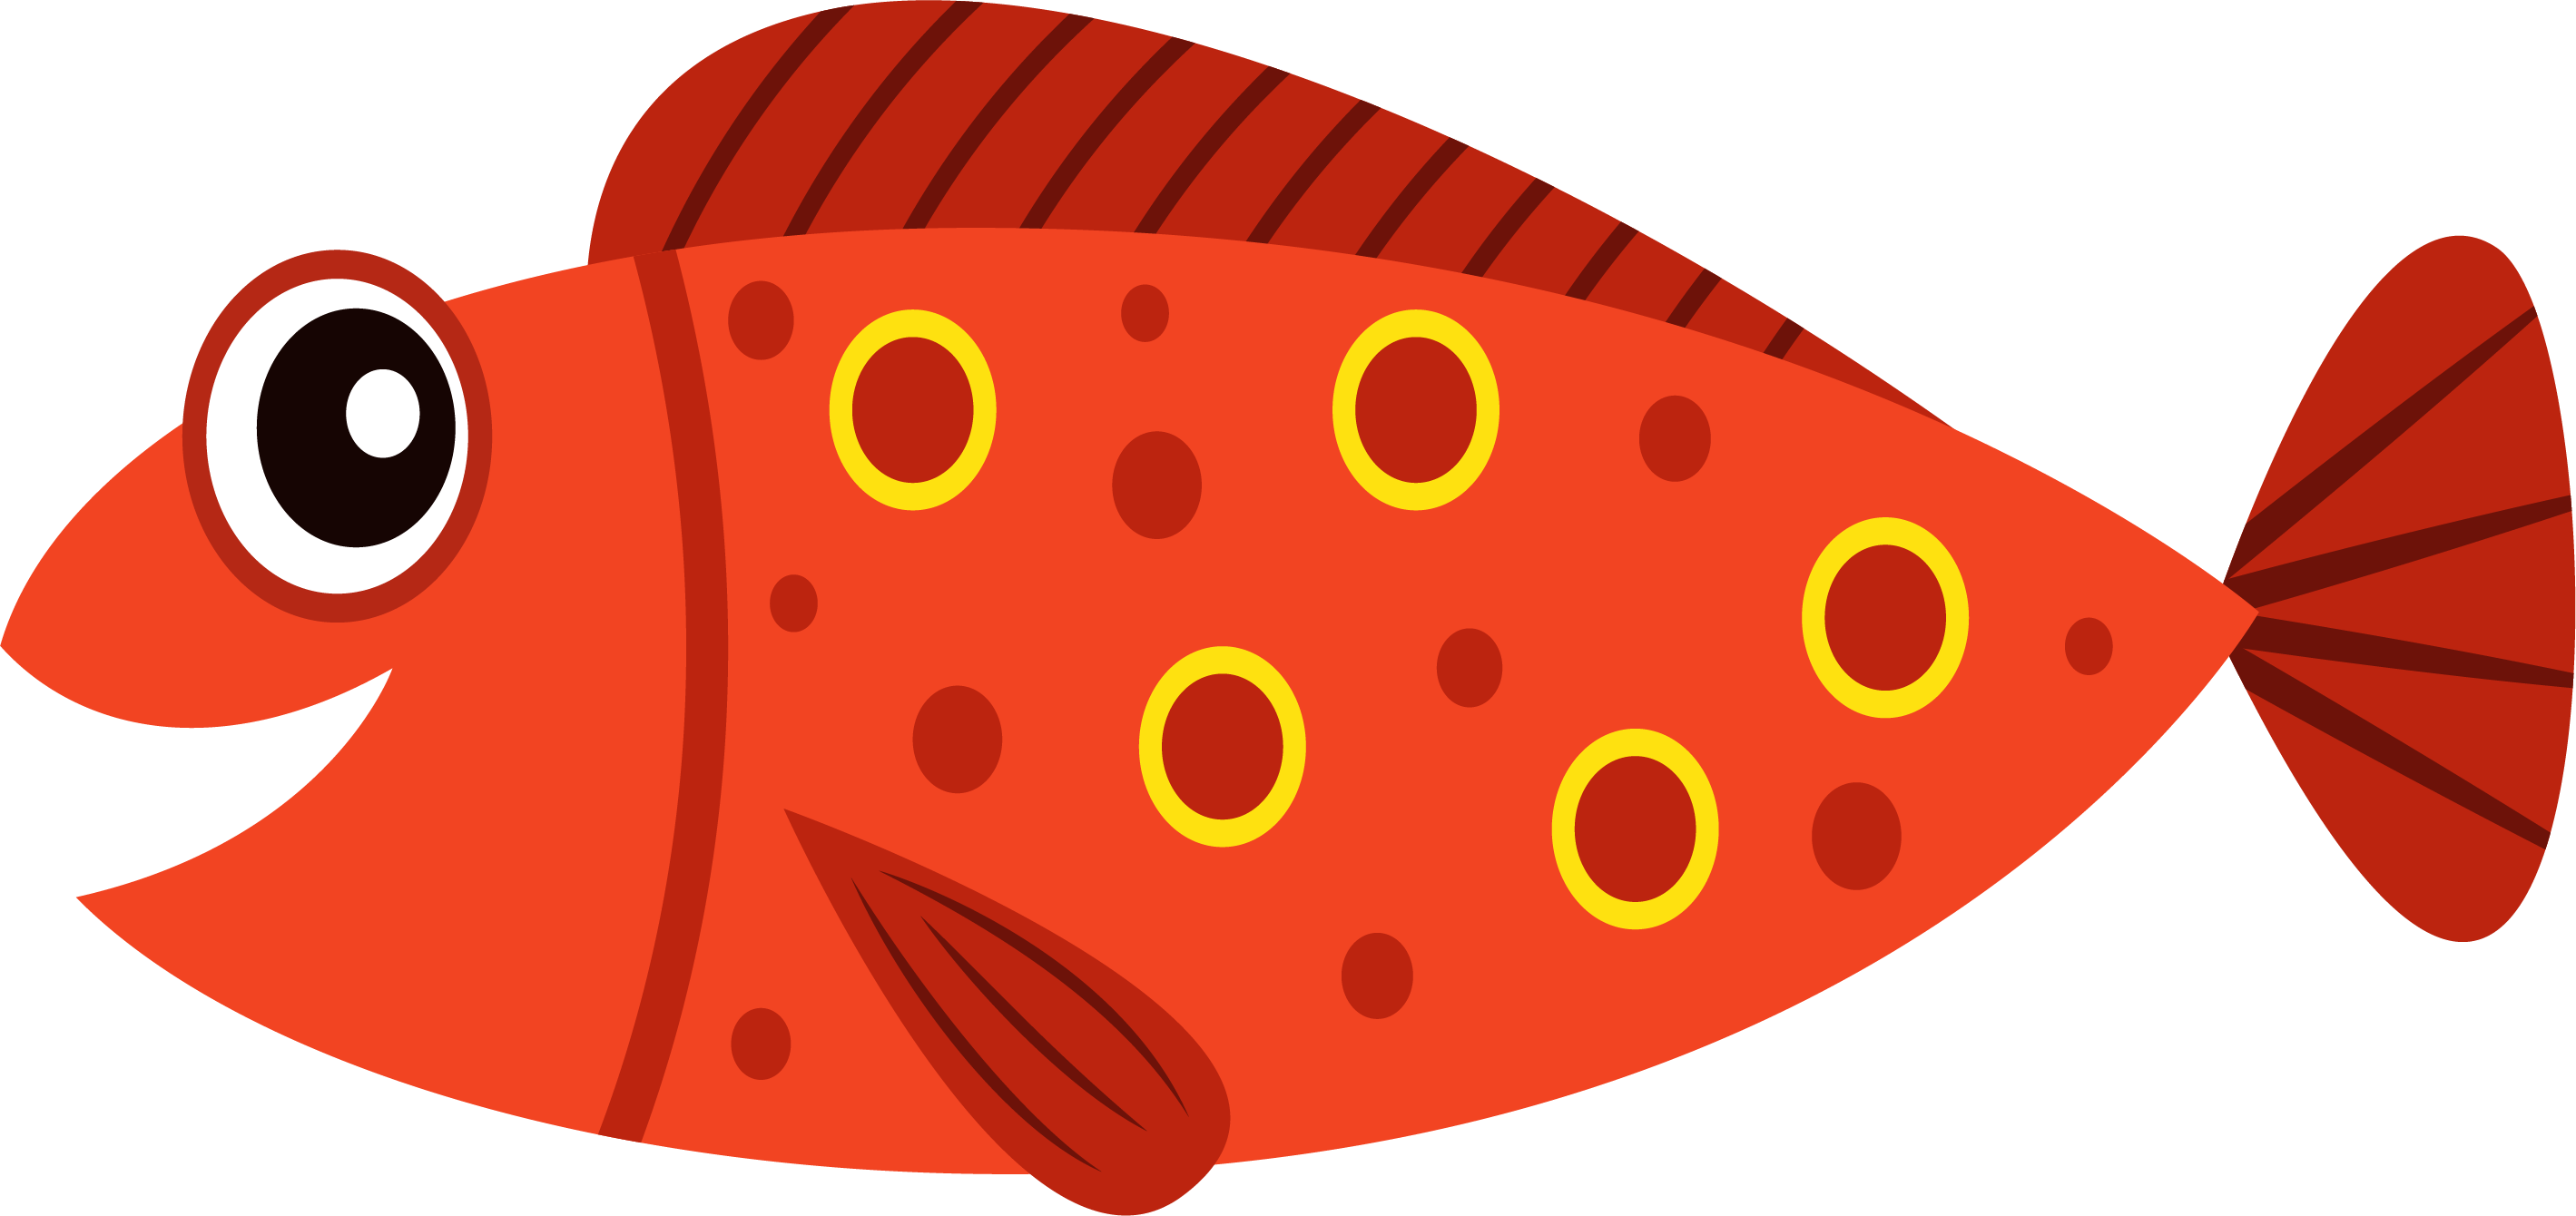 2 fish clipart jpg freeuse Fish PNG Images Transparent Pictures | PNG Only jpg freeuse